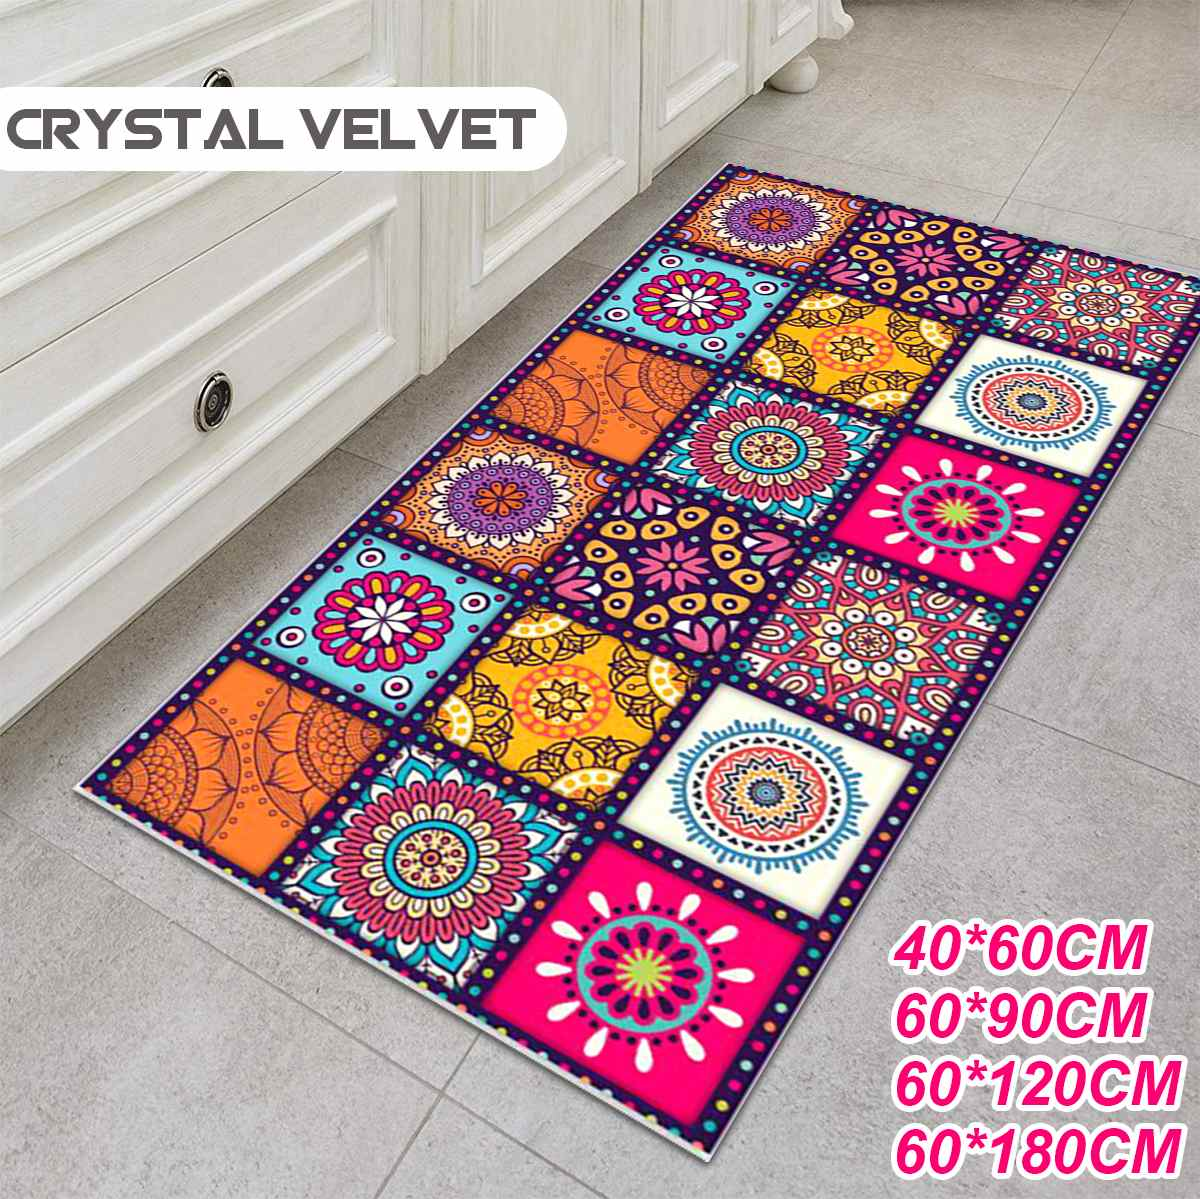 Non-slip Bohemian Style Floral Pattern Rug Floor Mat Living Room Balcony Bathroom Kitchen Bedroom Carpet